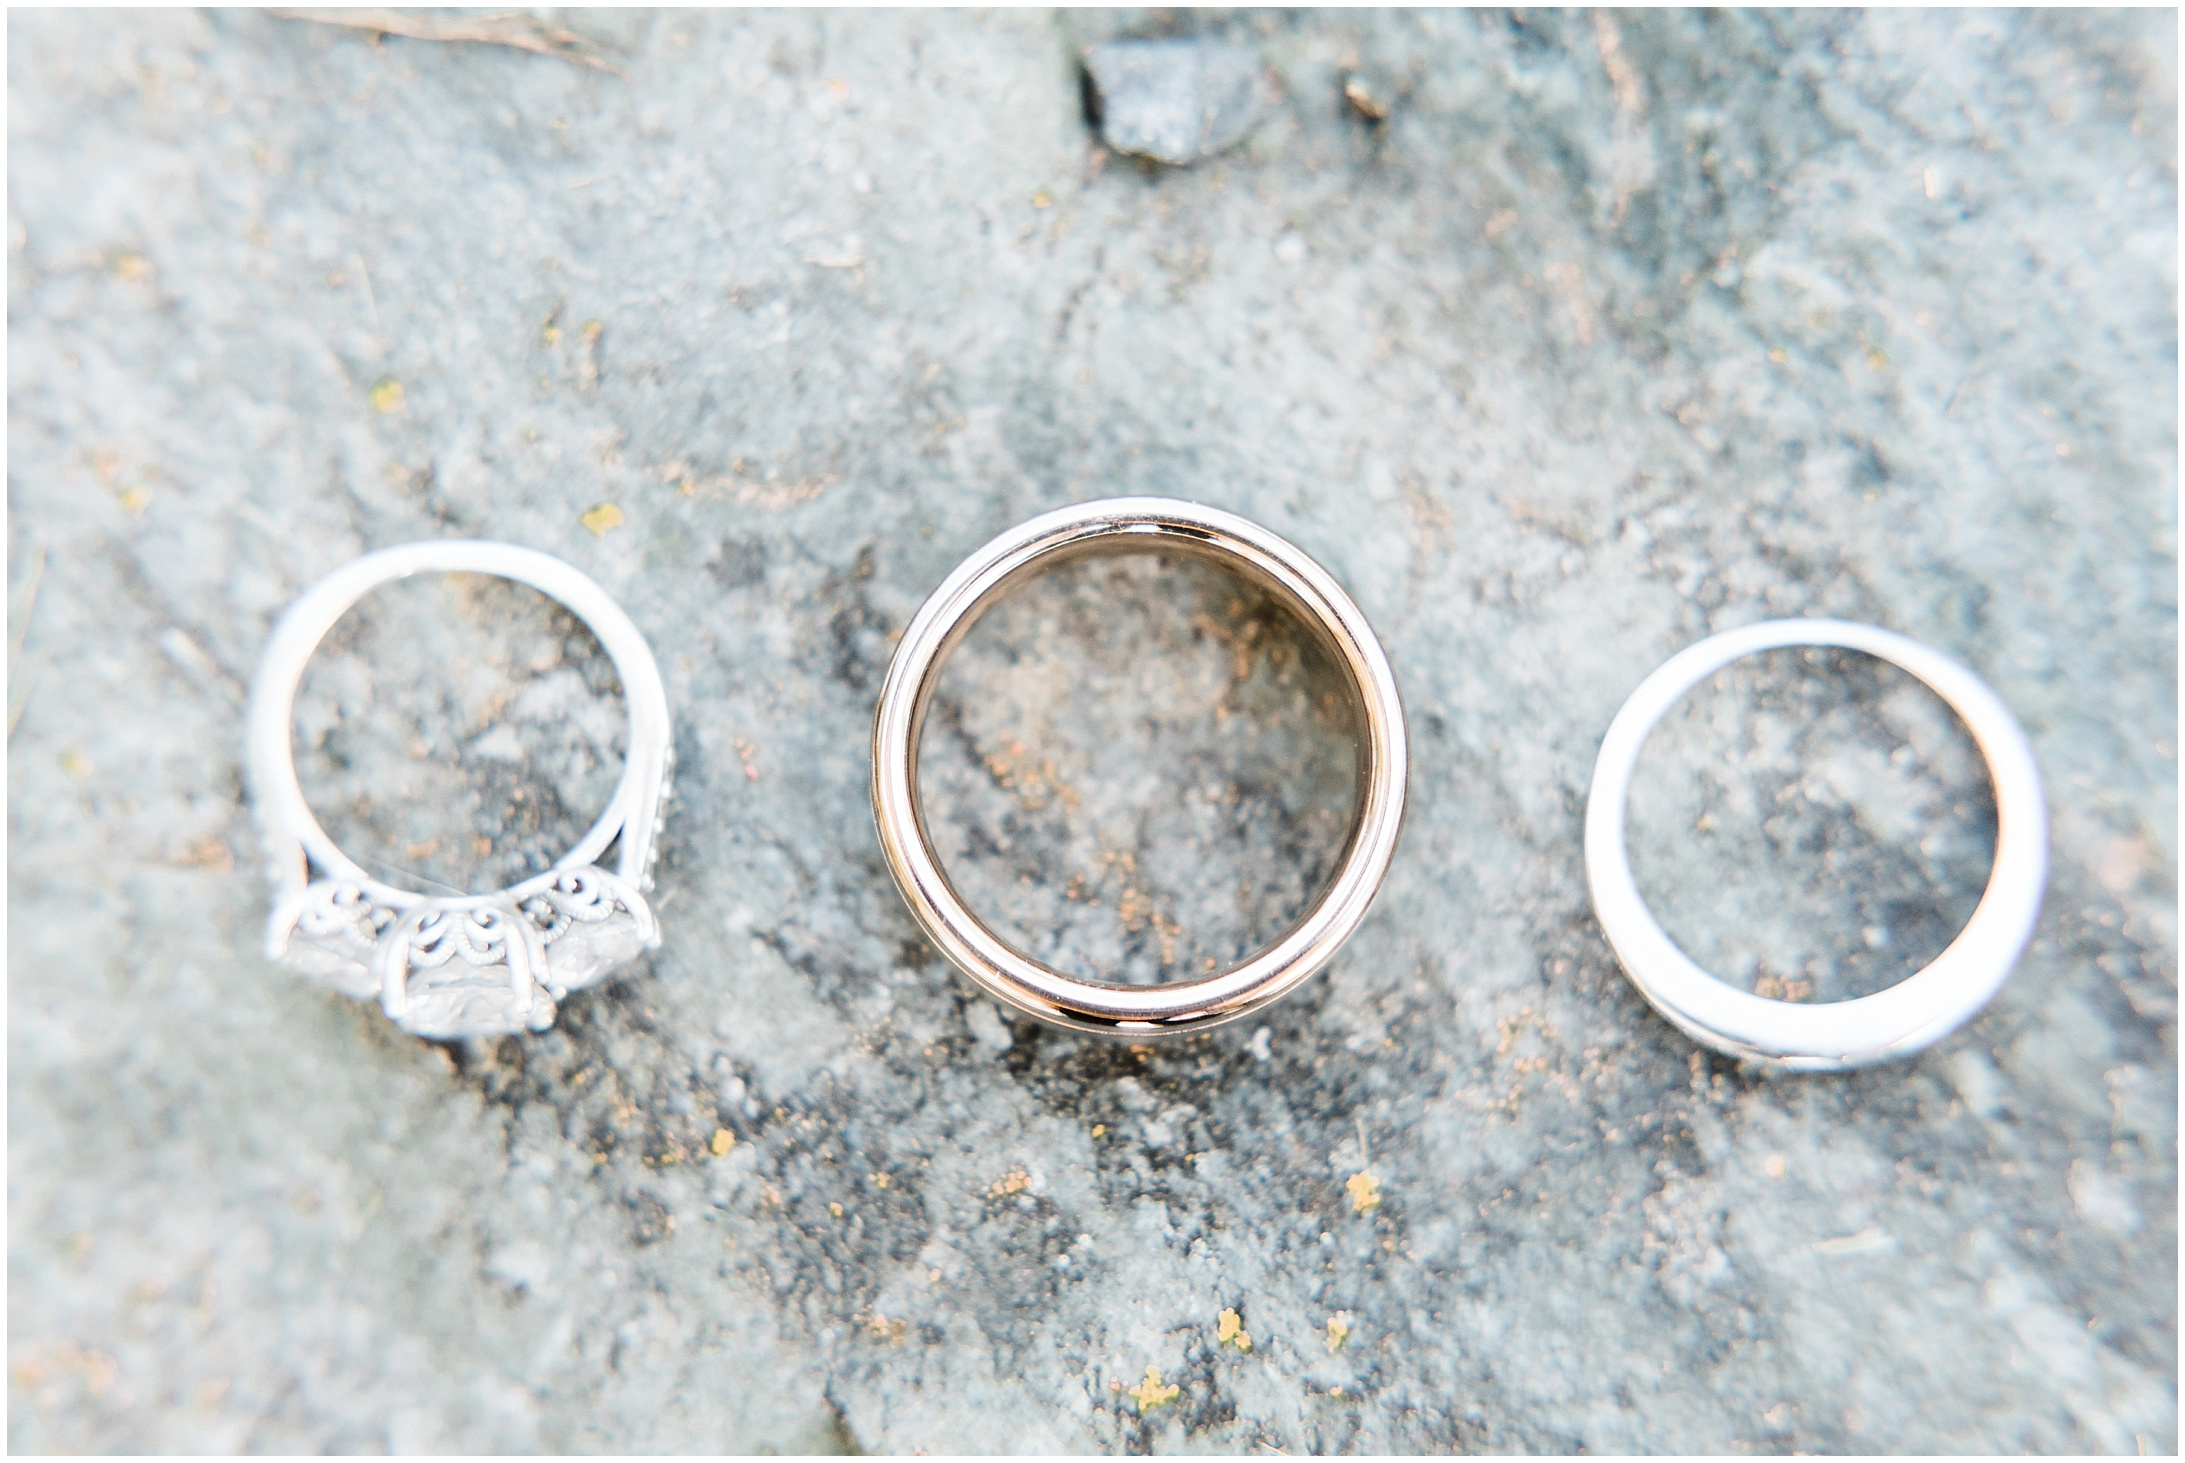 A closeup photo of wedding rings by Forthright Photo